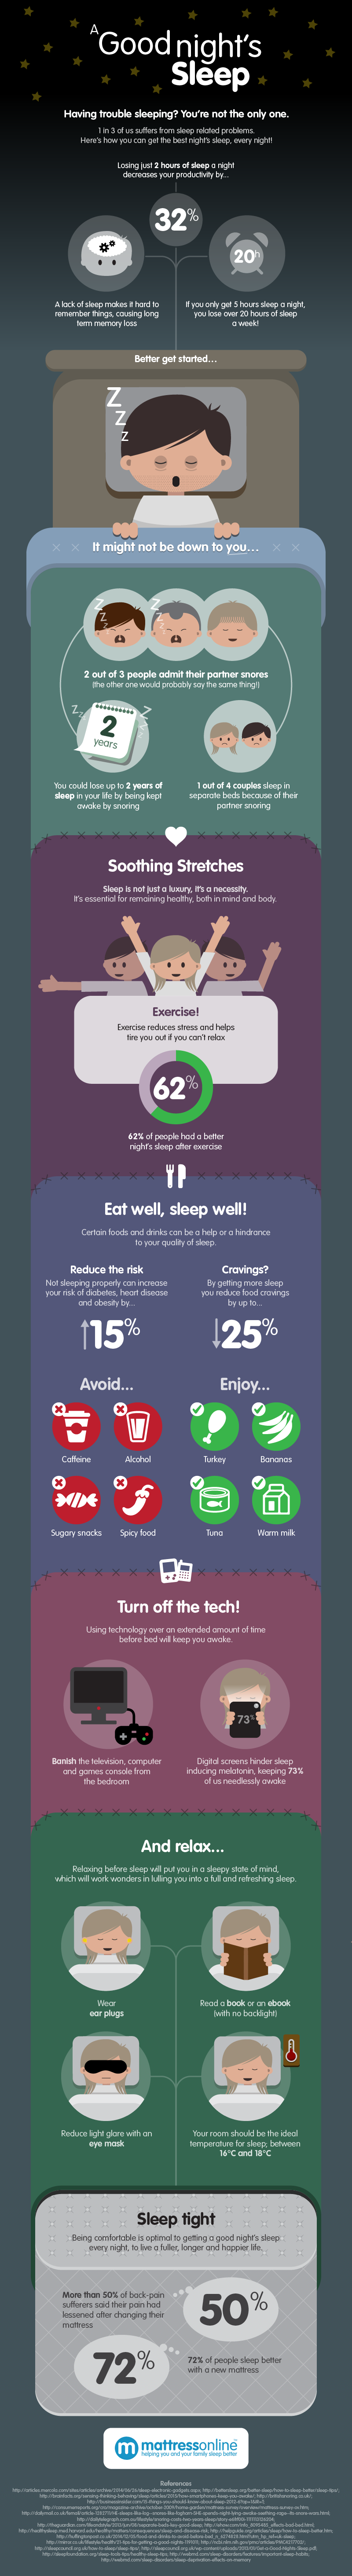 A Good Night's Sleep Infographic